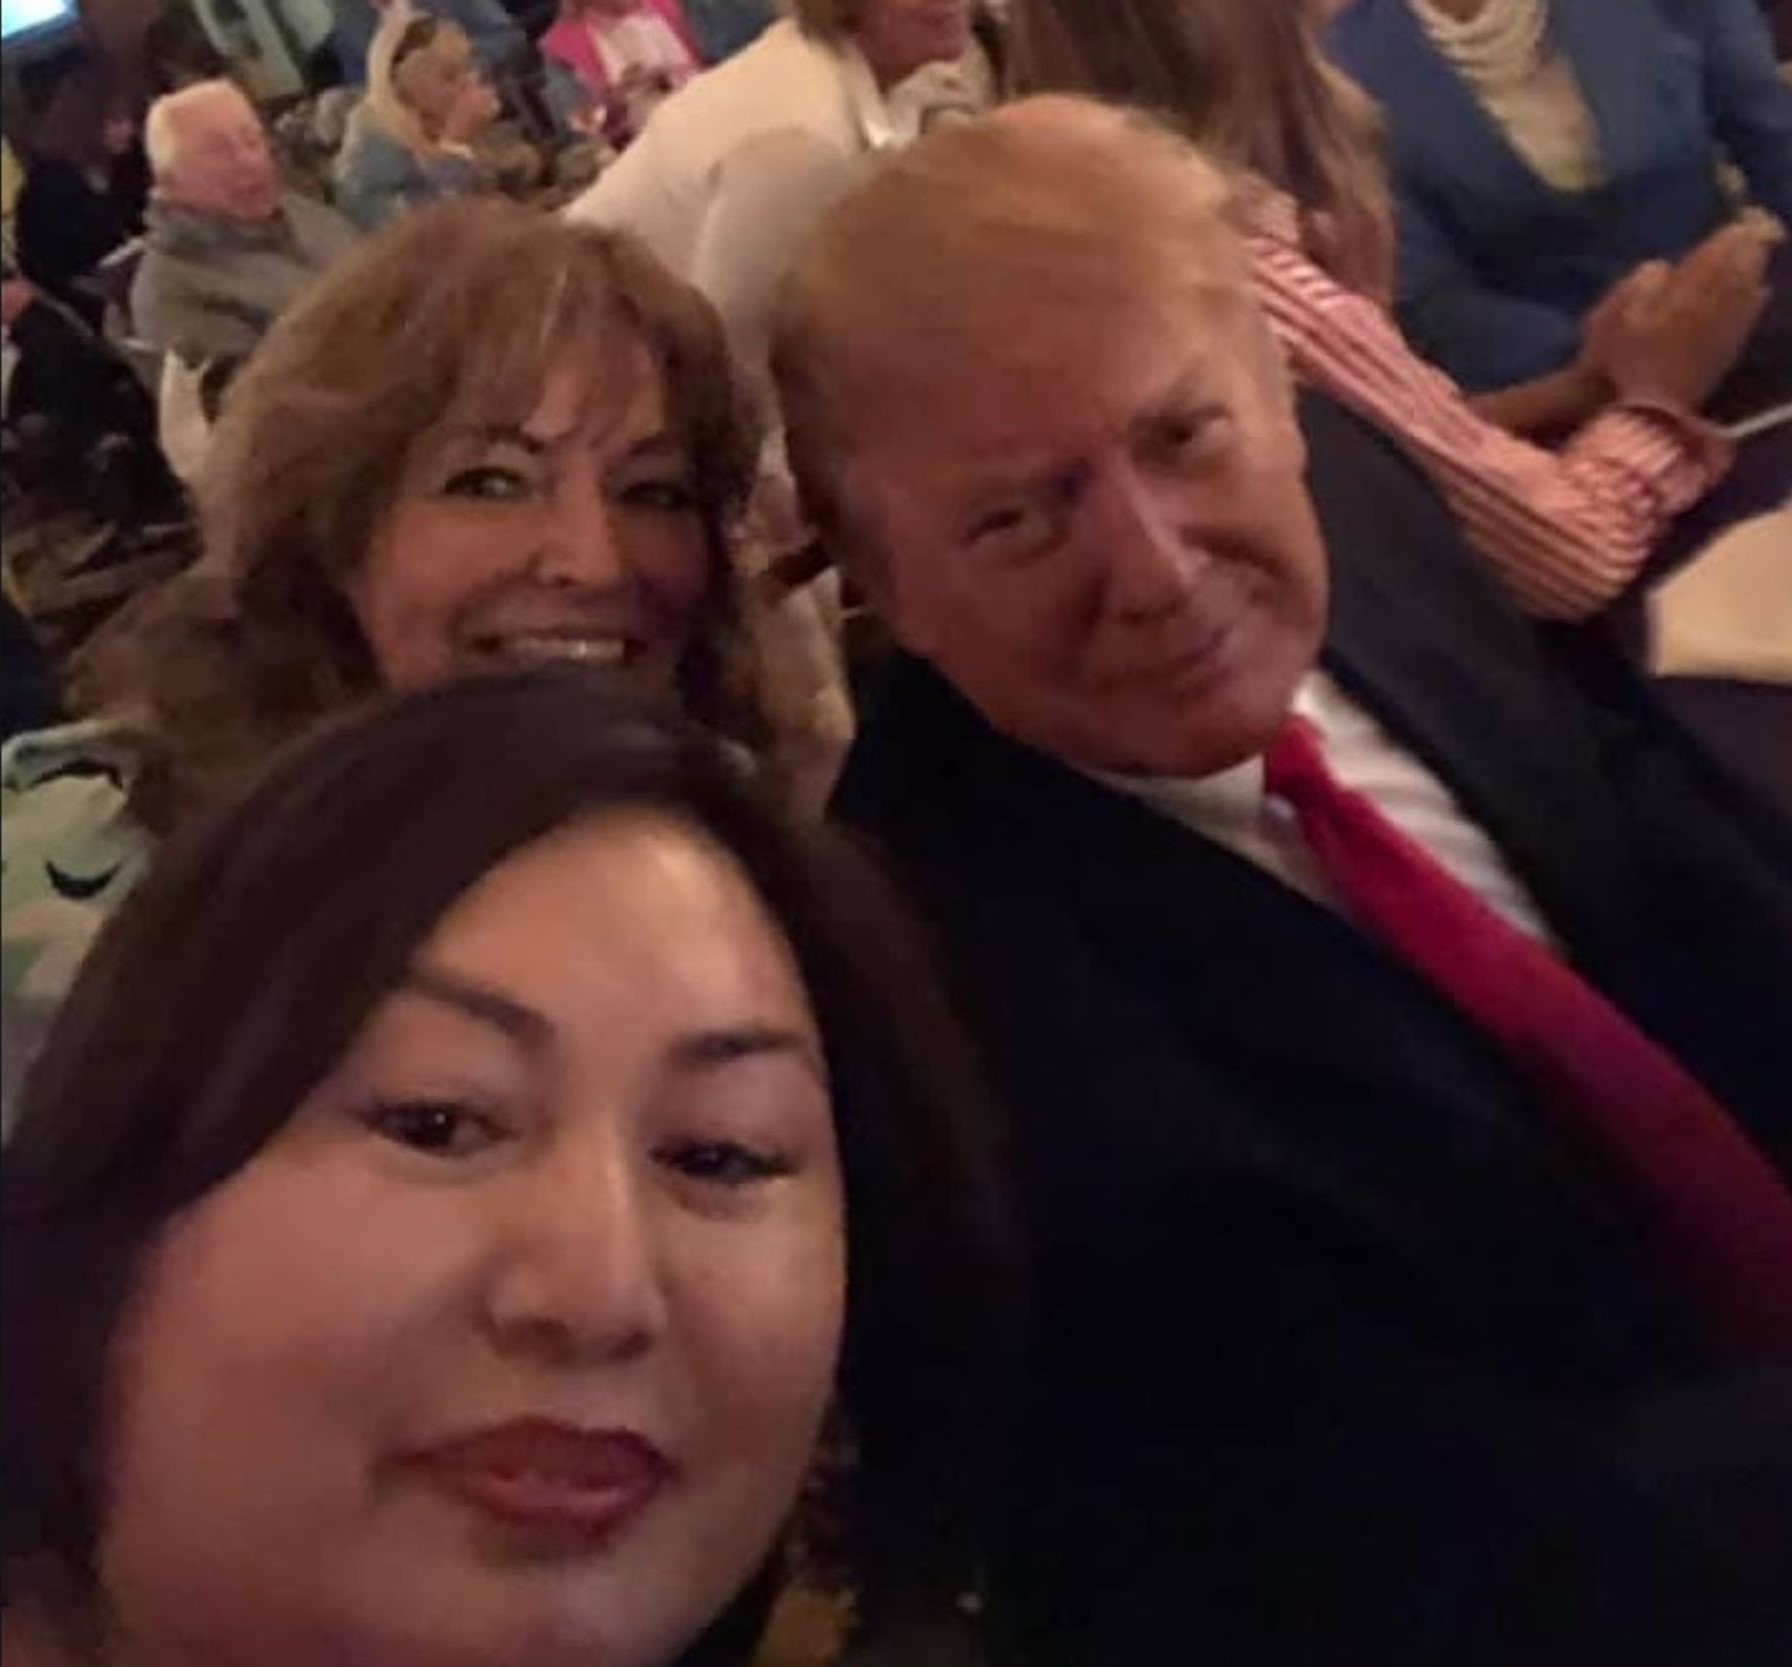 Former Orchids of Asia Brothel Owner Sold Access to Trump Events